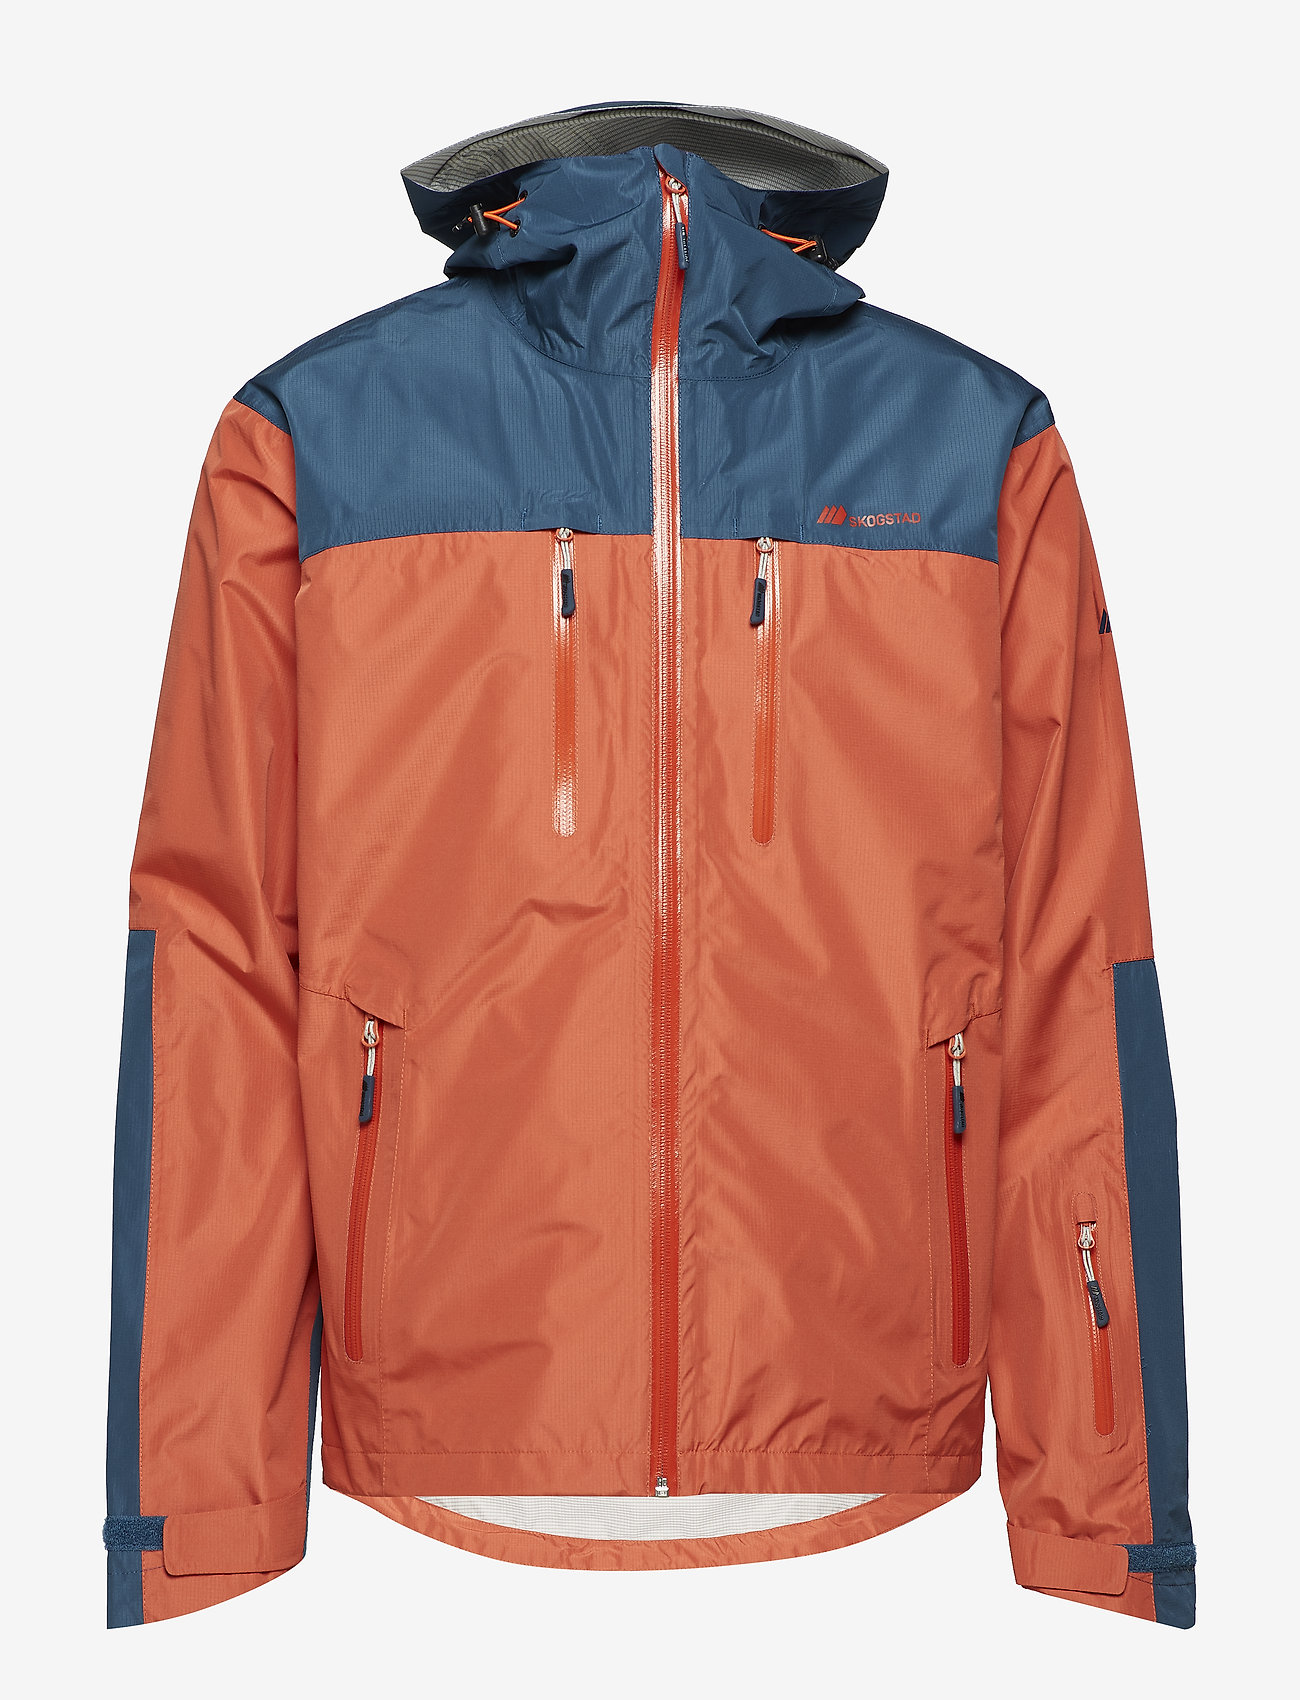 Skogstad Kirkestinden 2,5-layer Technical Shell Jacket - Jackor & Rockar Chilli